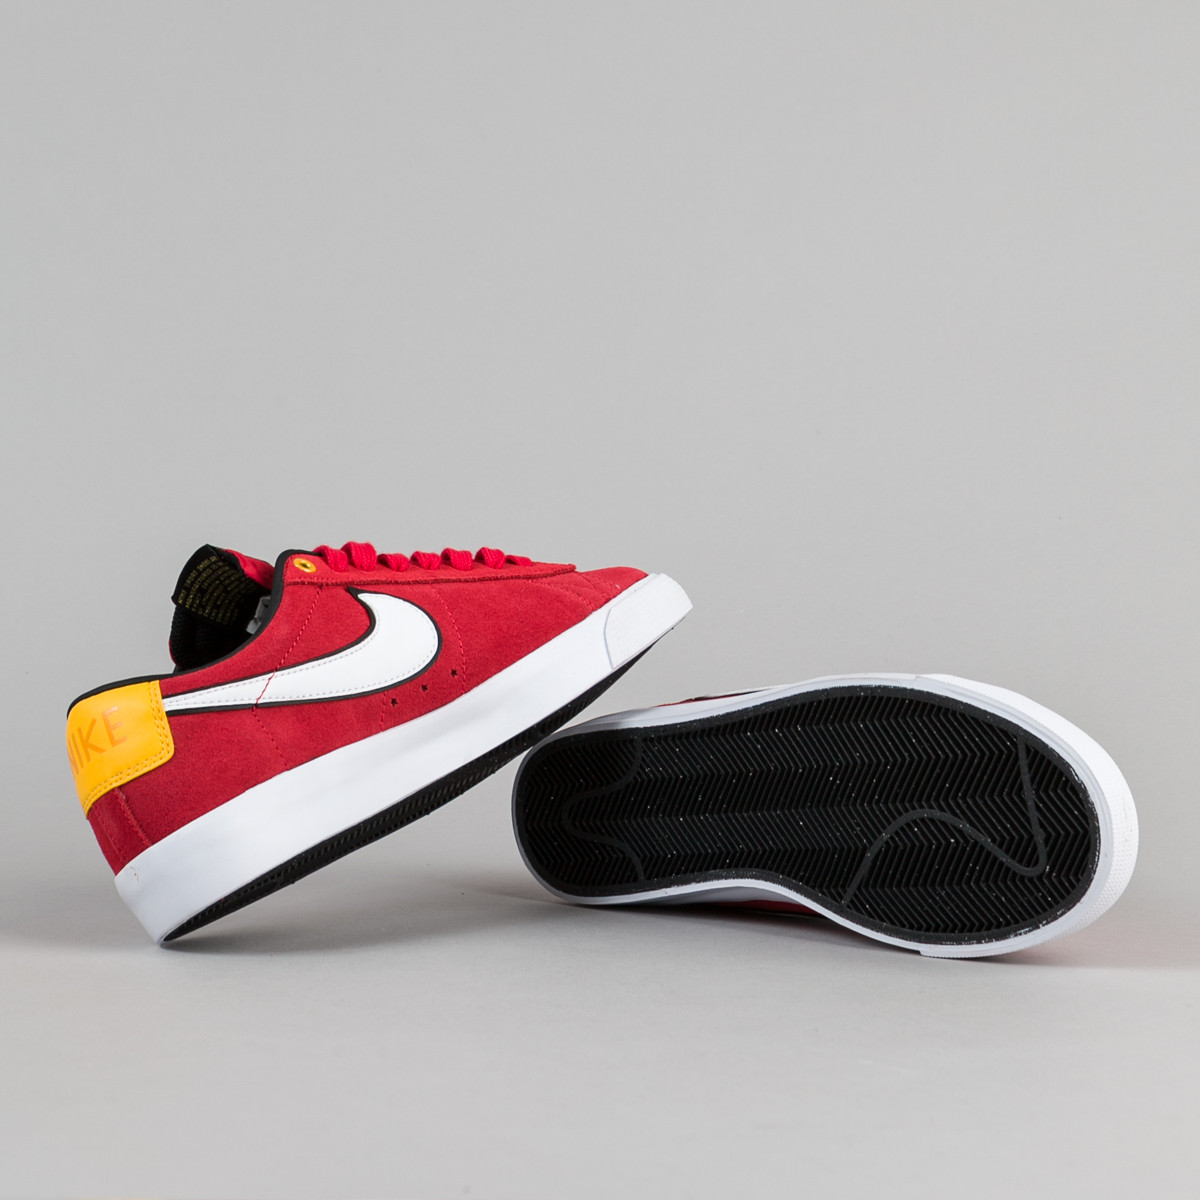 newest collection 37c6f a9427 Nike SB Blazer Low GT University Red - Air 23 - Air Jordan Release Dates,  Foamposite, Air Max, and More